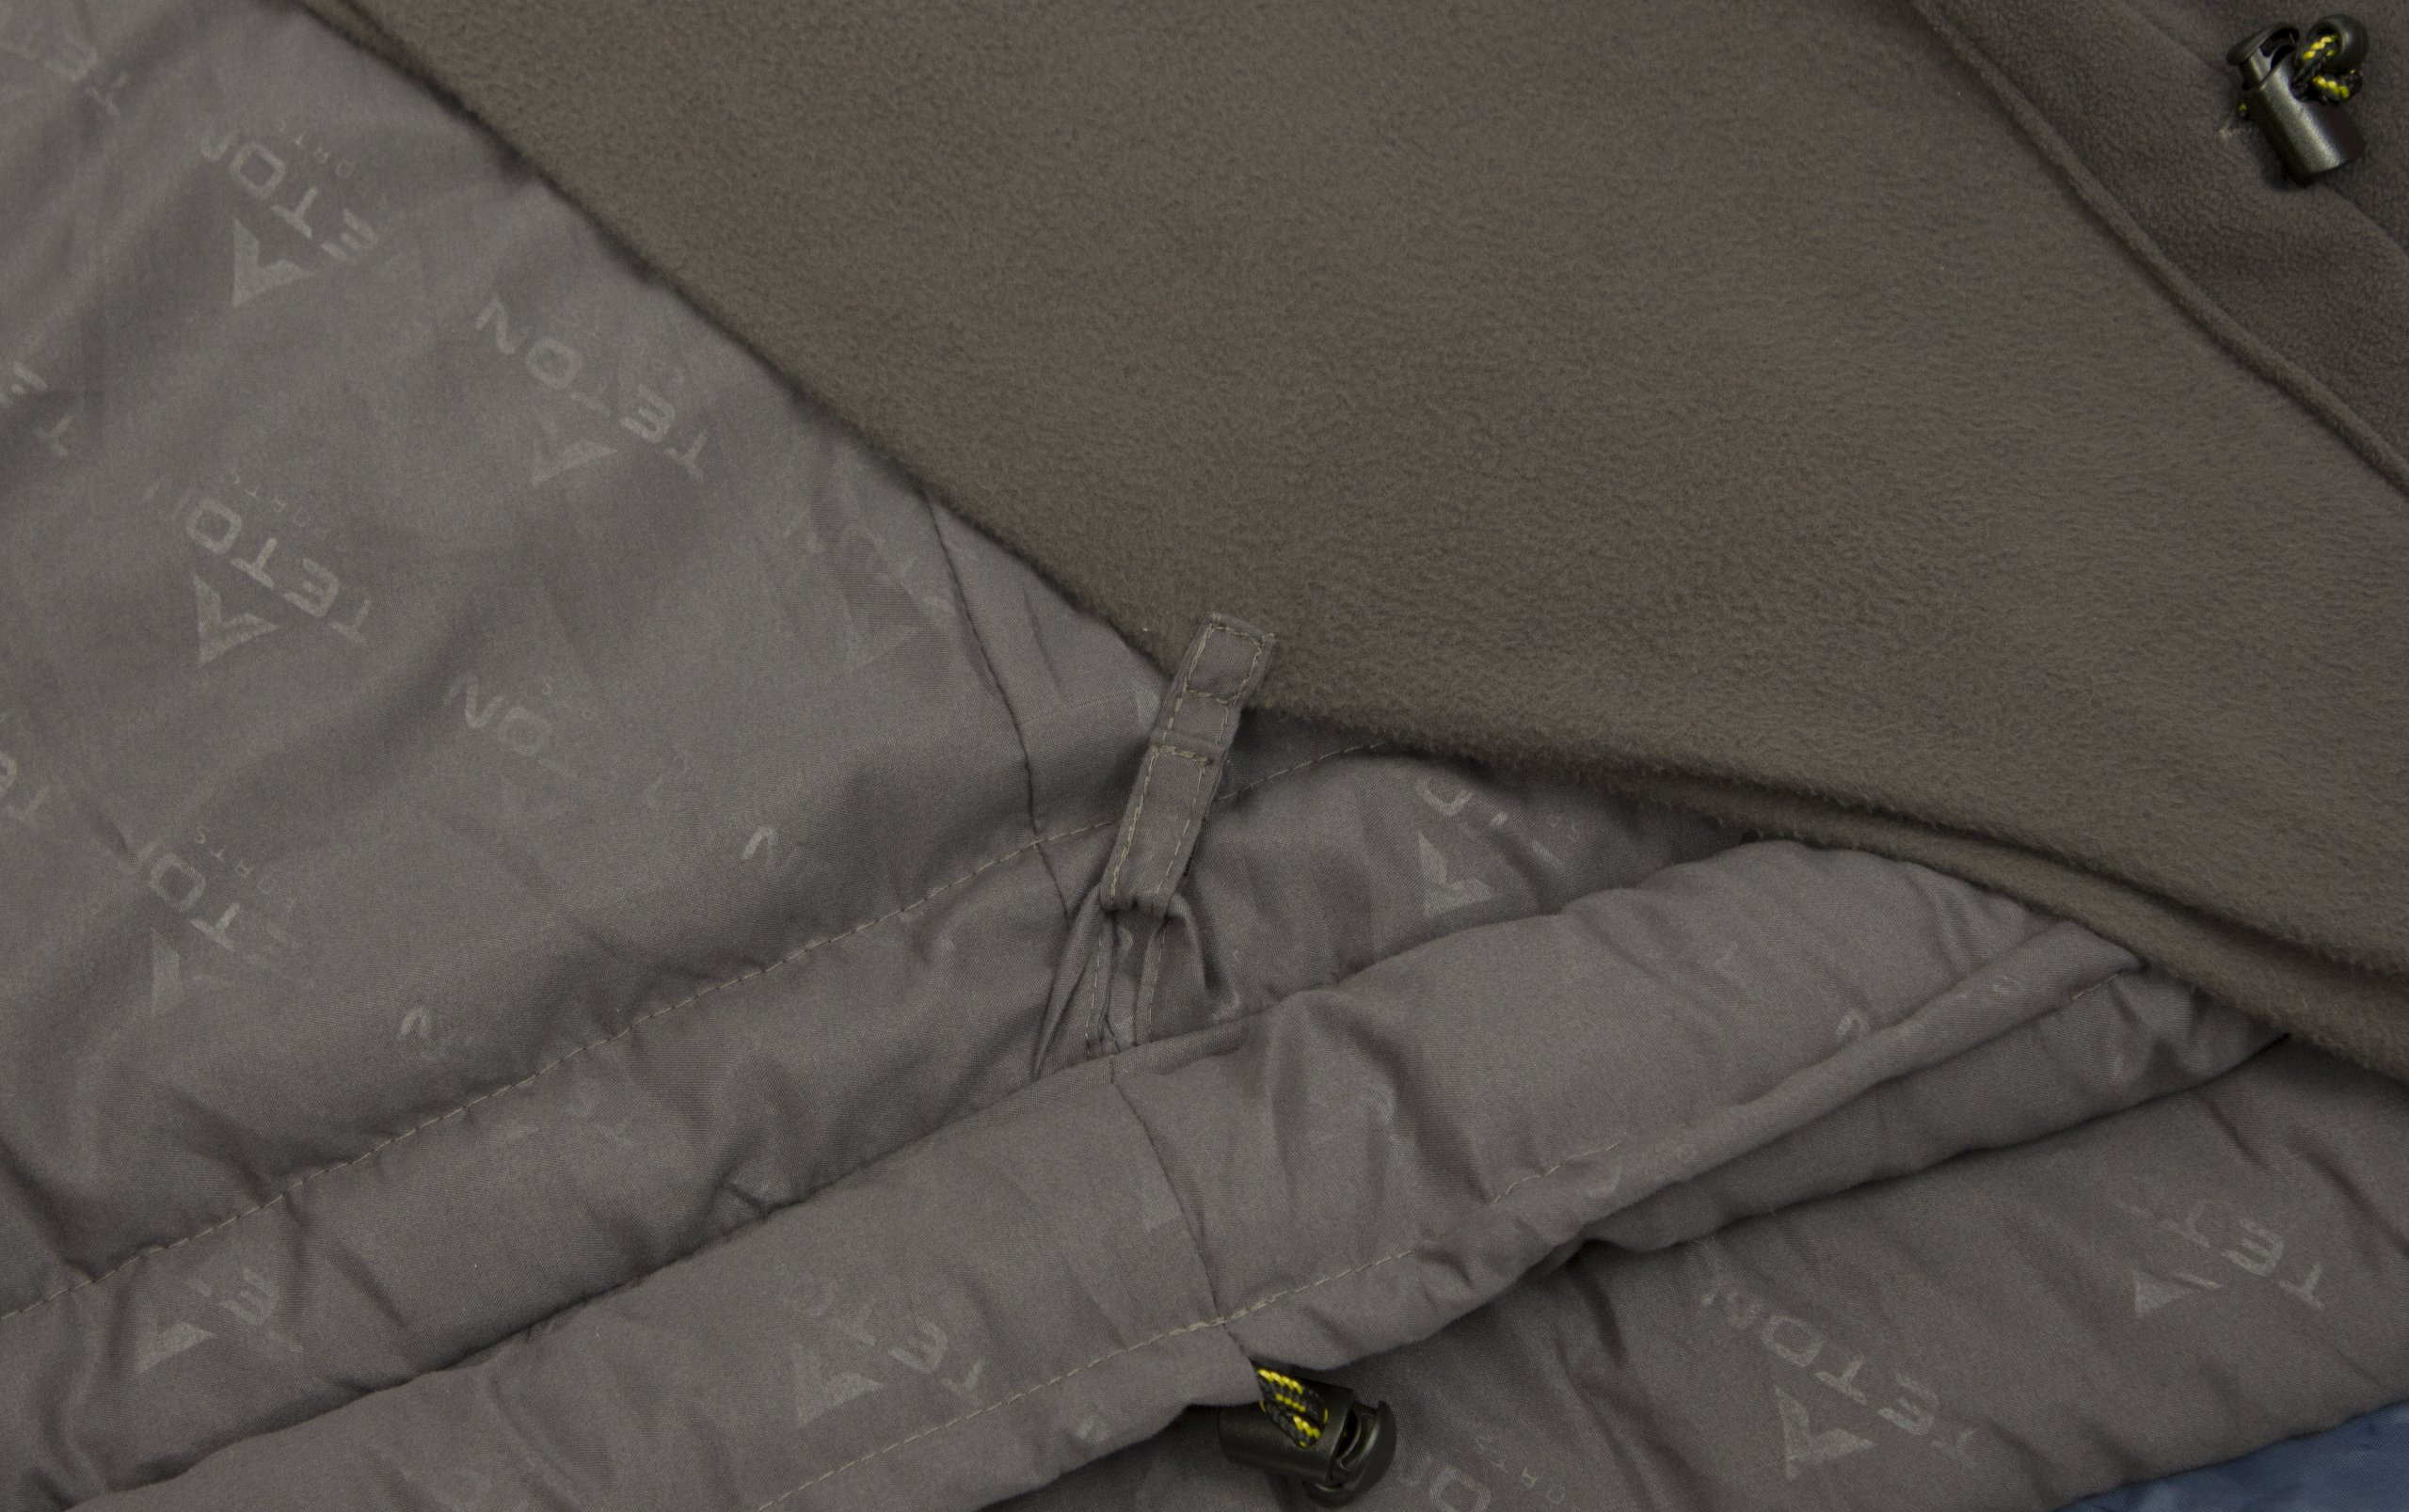 TETON Sports Polara 3-in-1 0F Sleeping Bag; 0 Degree Sleeping Bag Great for Cold Weather Camping and Hunting; Free Compression Sack Included